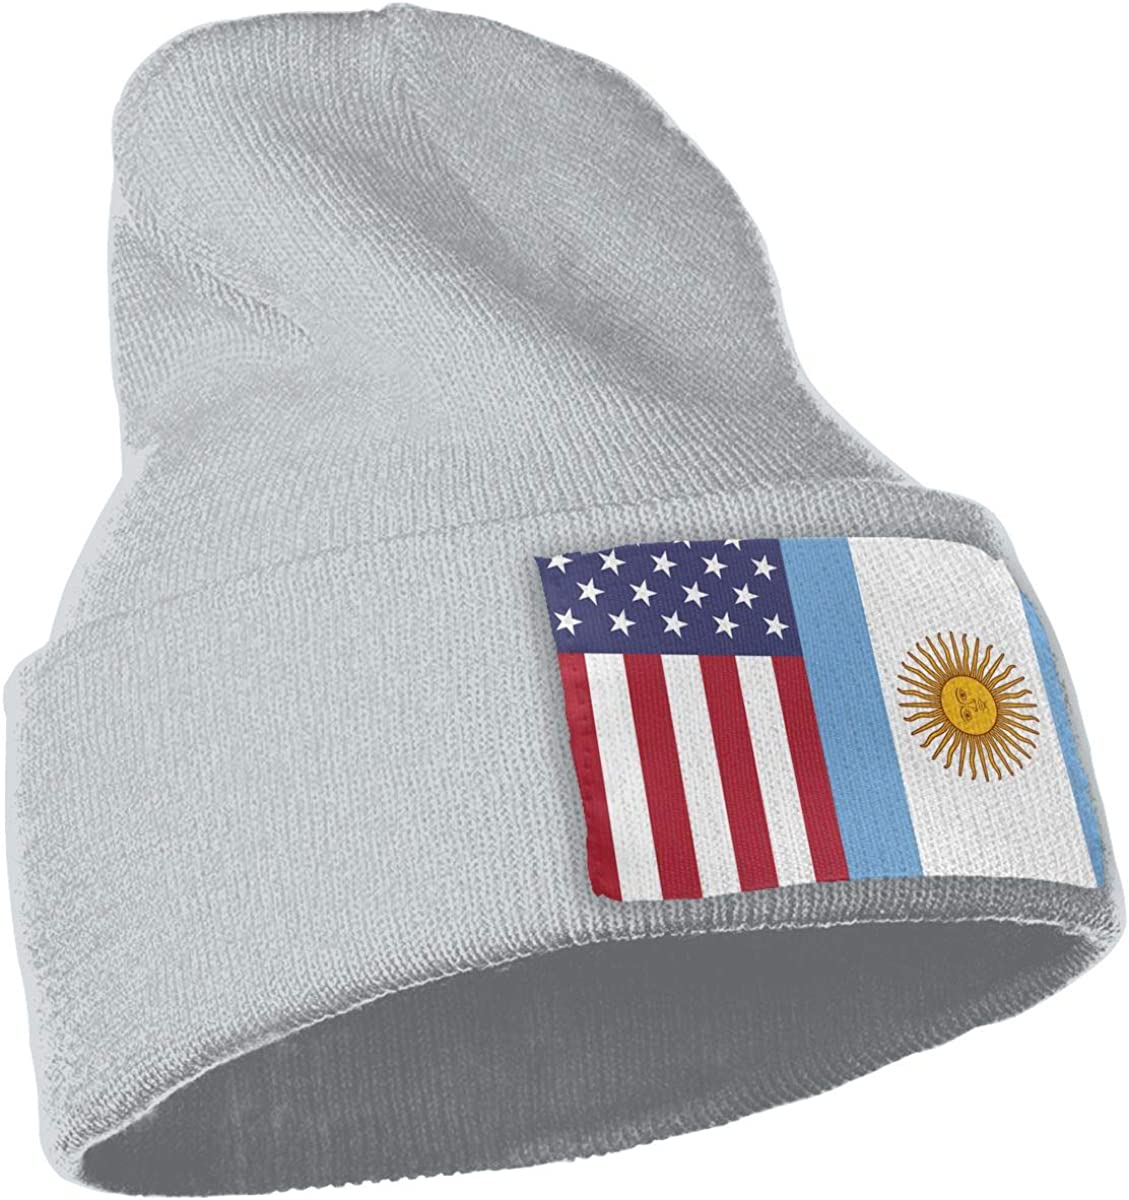 American Argentina Flag Thick Skull Cap WHOO93@Y Unisex 100/% Acrylic Knit Hat Cap